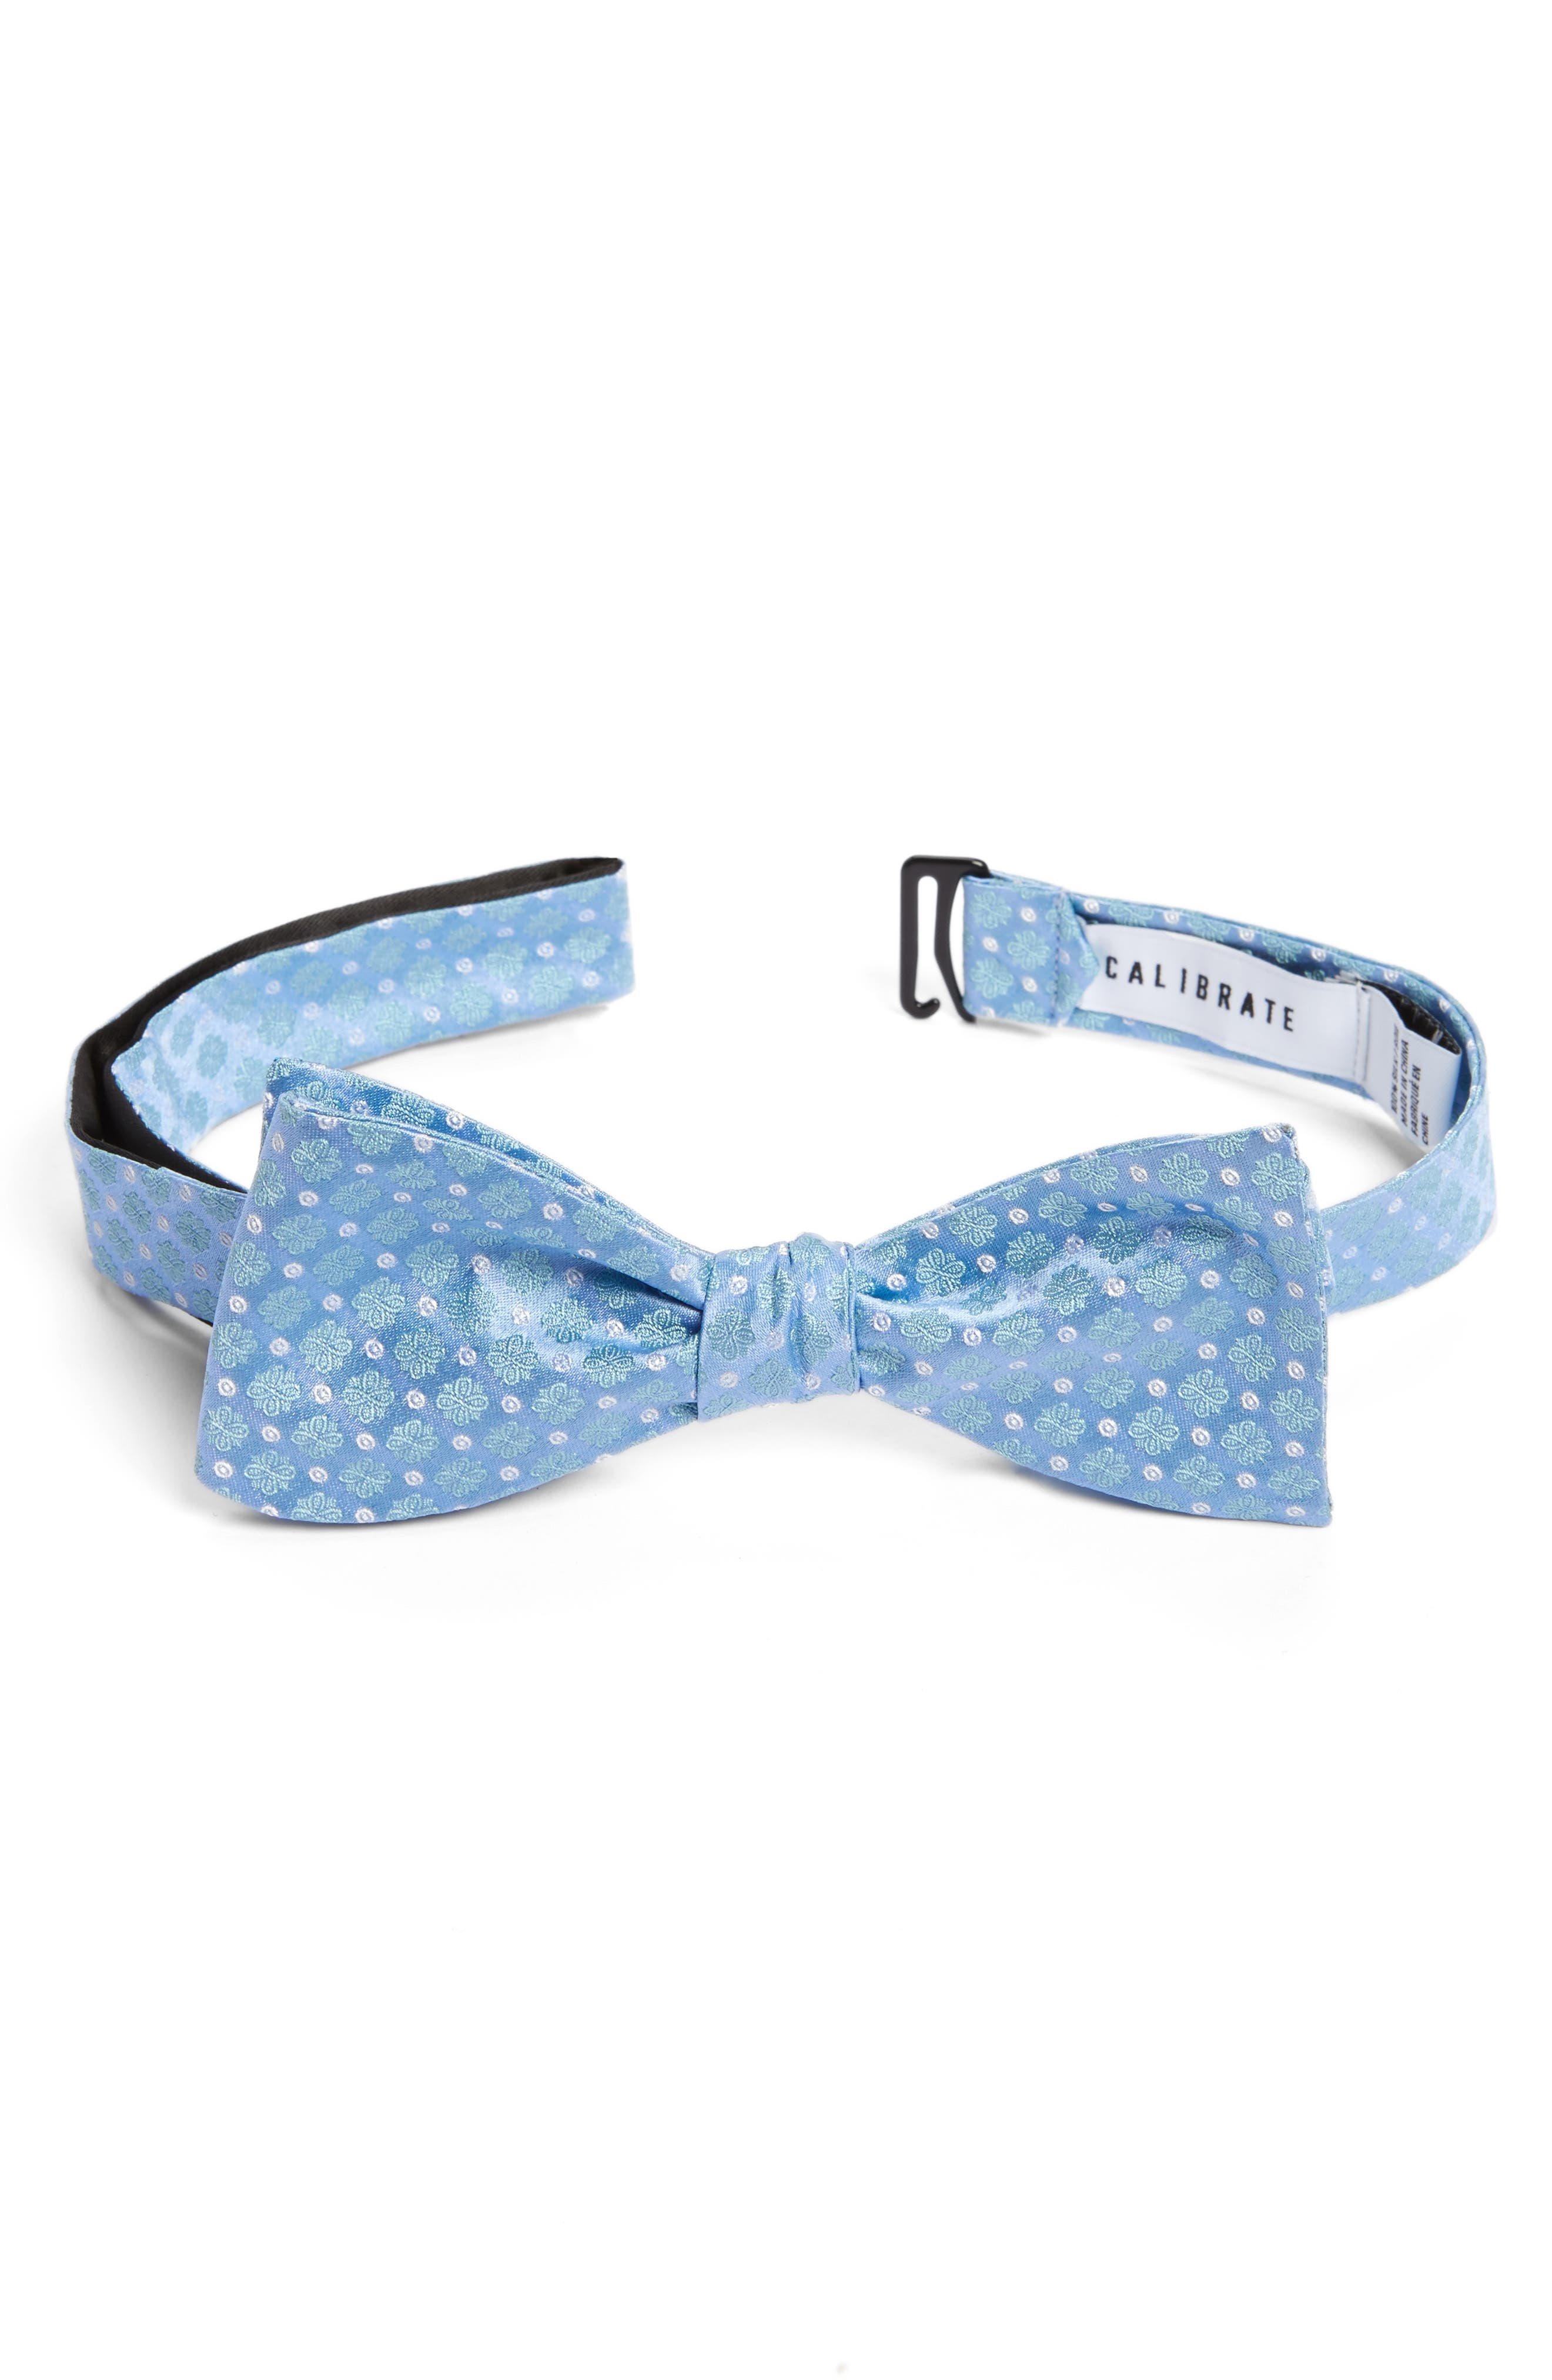 Calibrate Forget Me Not Medallion Silk Bow Tie